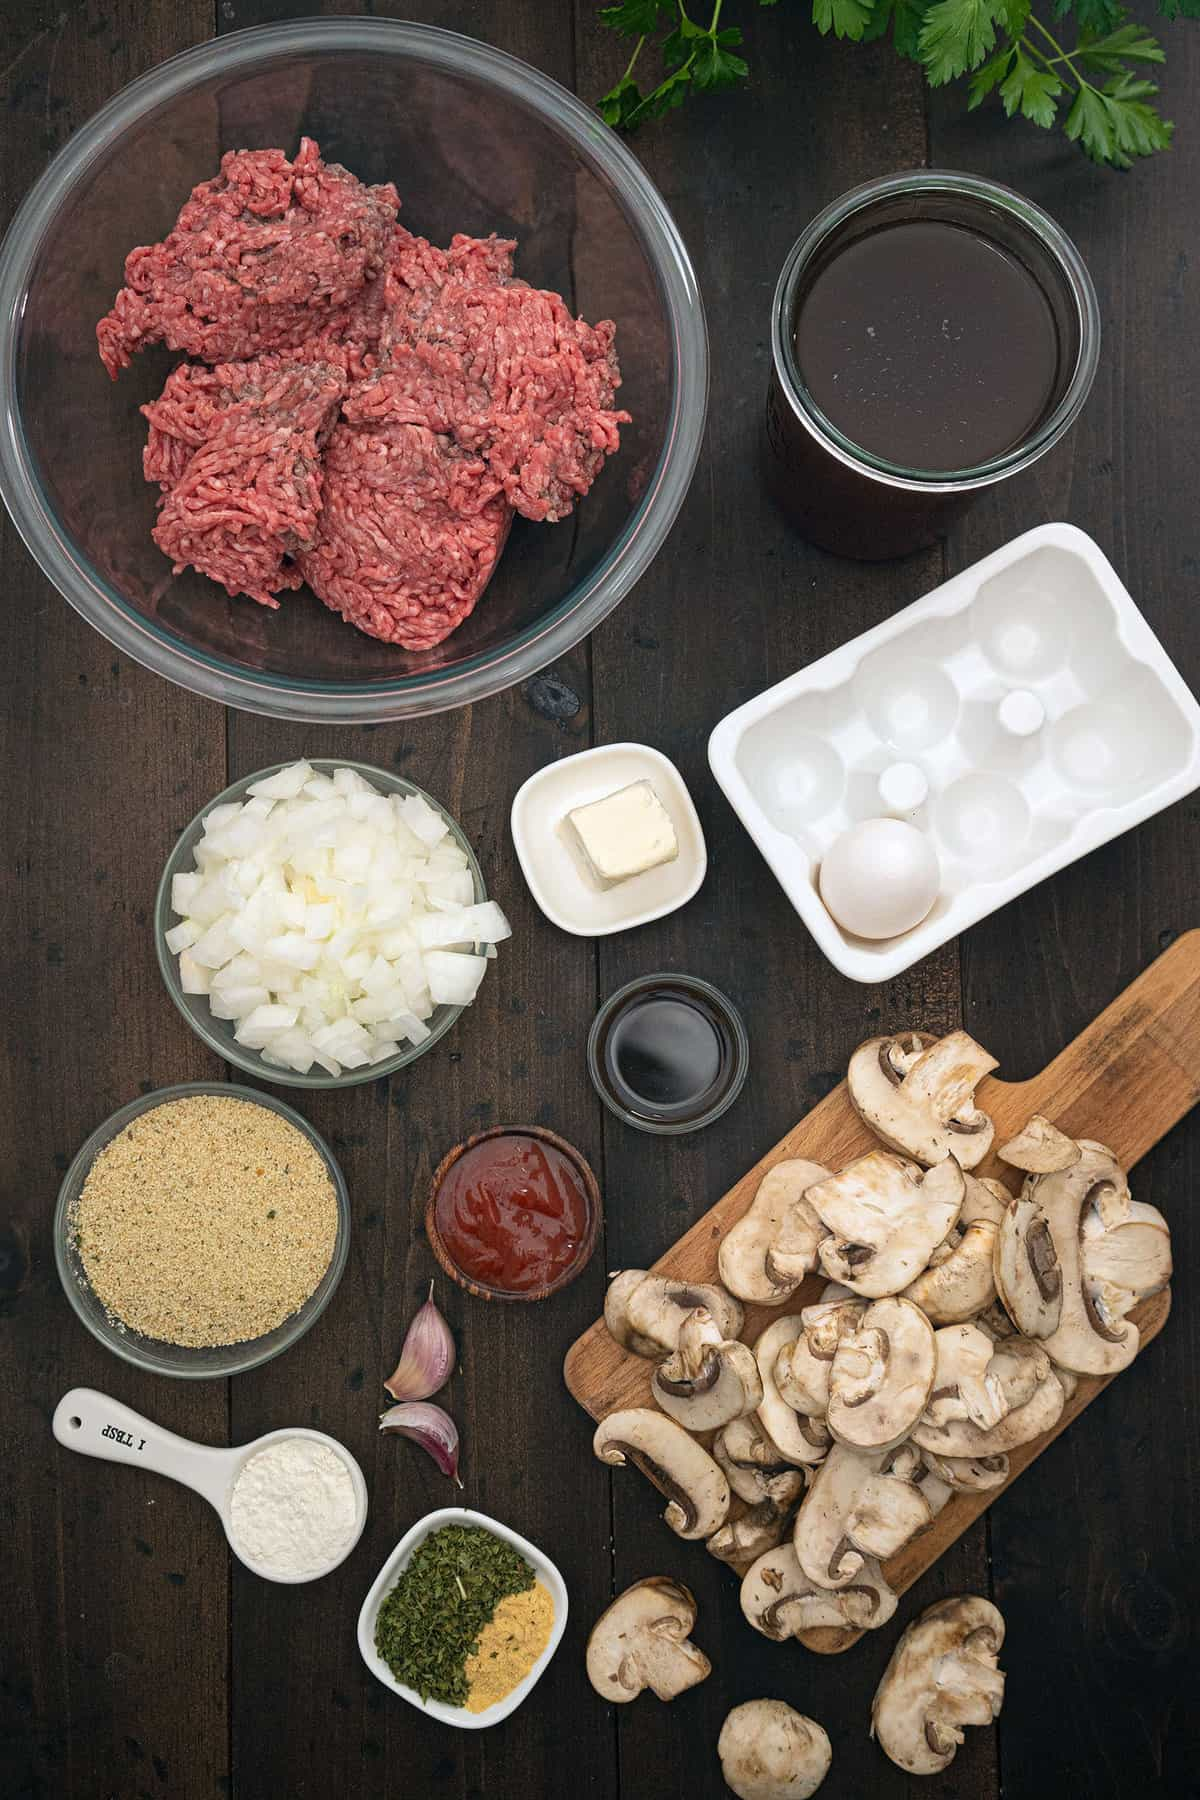 A top down shot of the Ingredients of salisbury steak, all layed out in bowls.